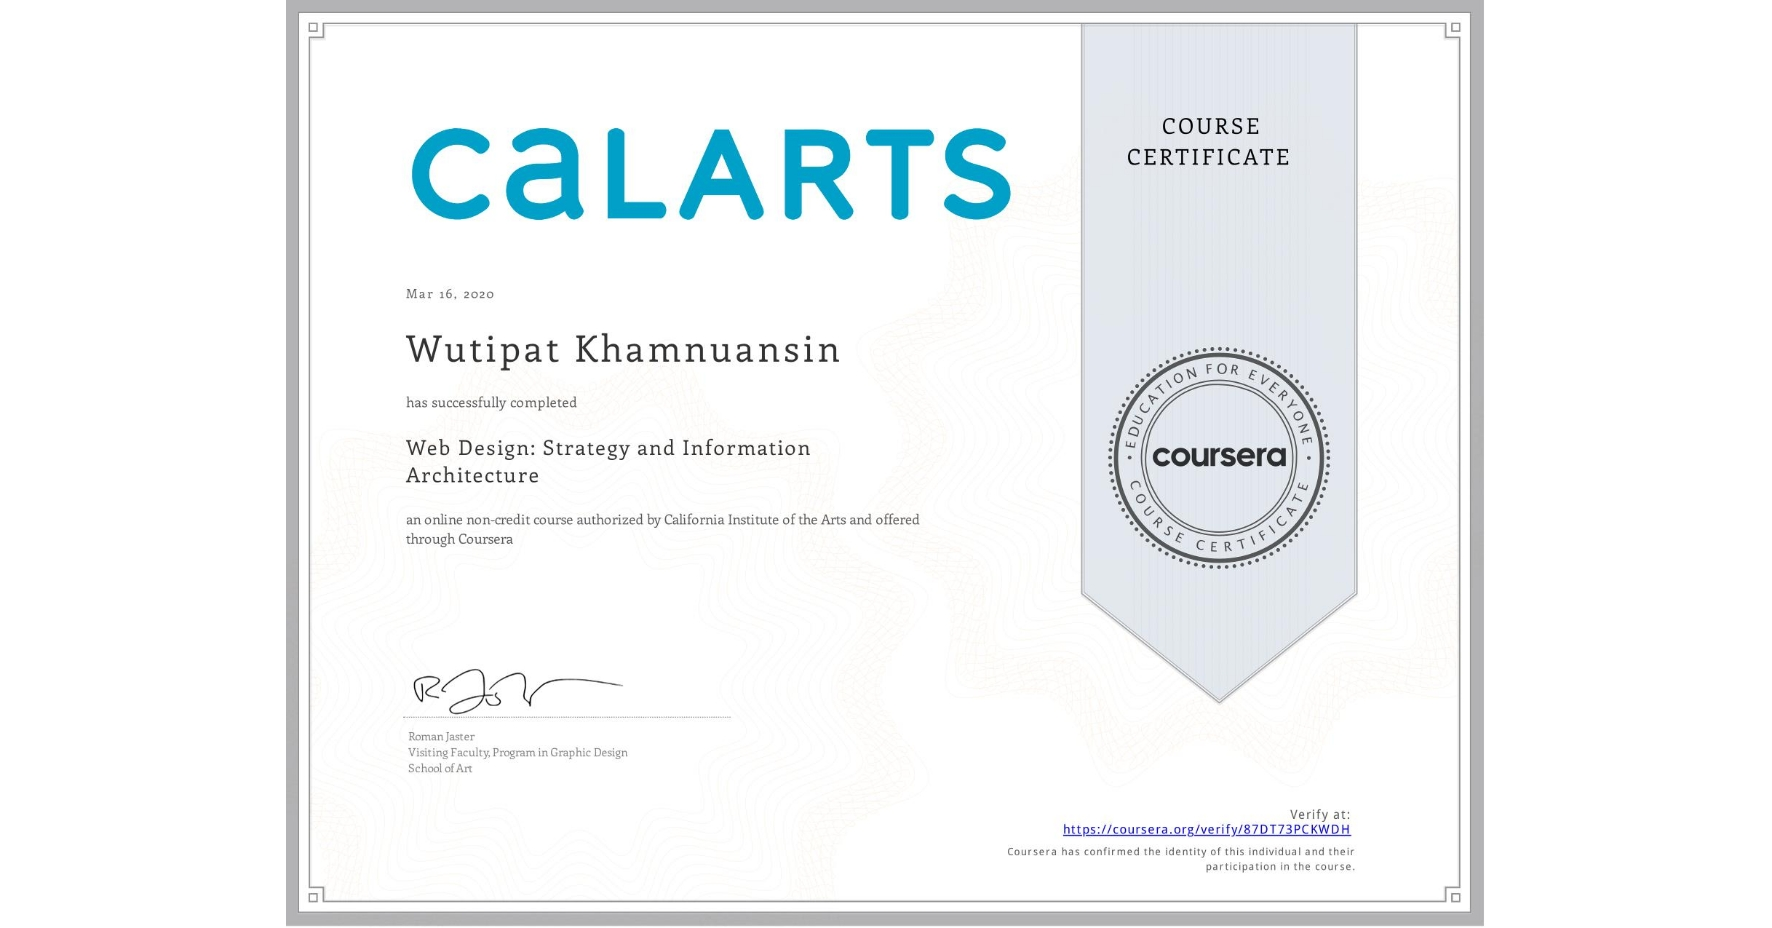 View certificate for Wutipat Khamnuansin, Web Design: Strategy and Information Architecture, an online non-credit course authorized by California Institute of the Arts and offered through Coursera